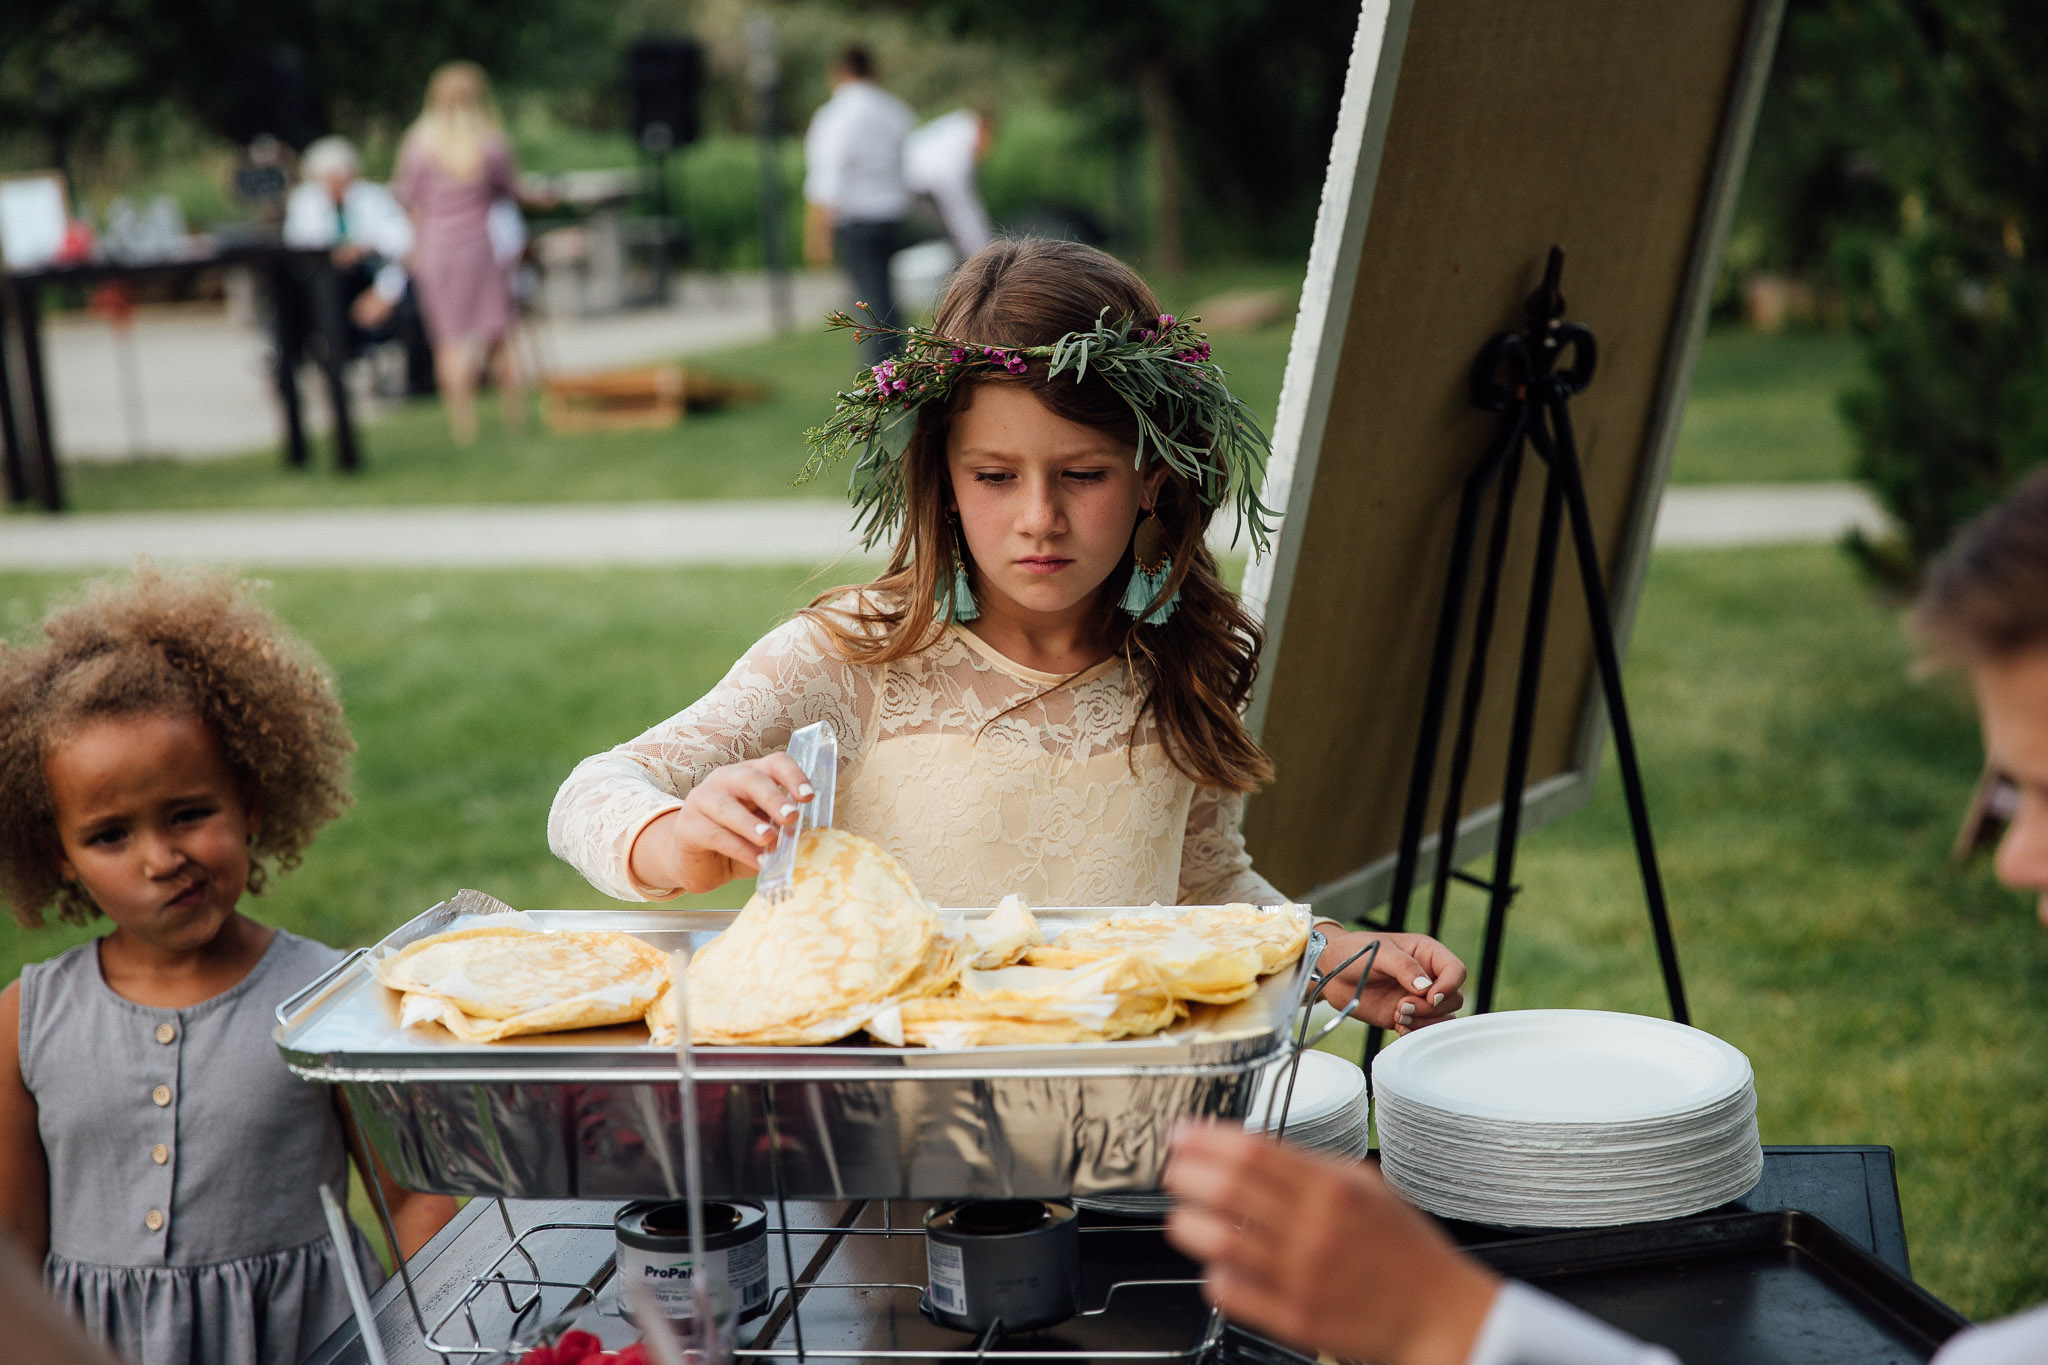 Flower girl makes a crepe during wedding reception